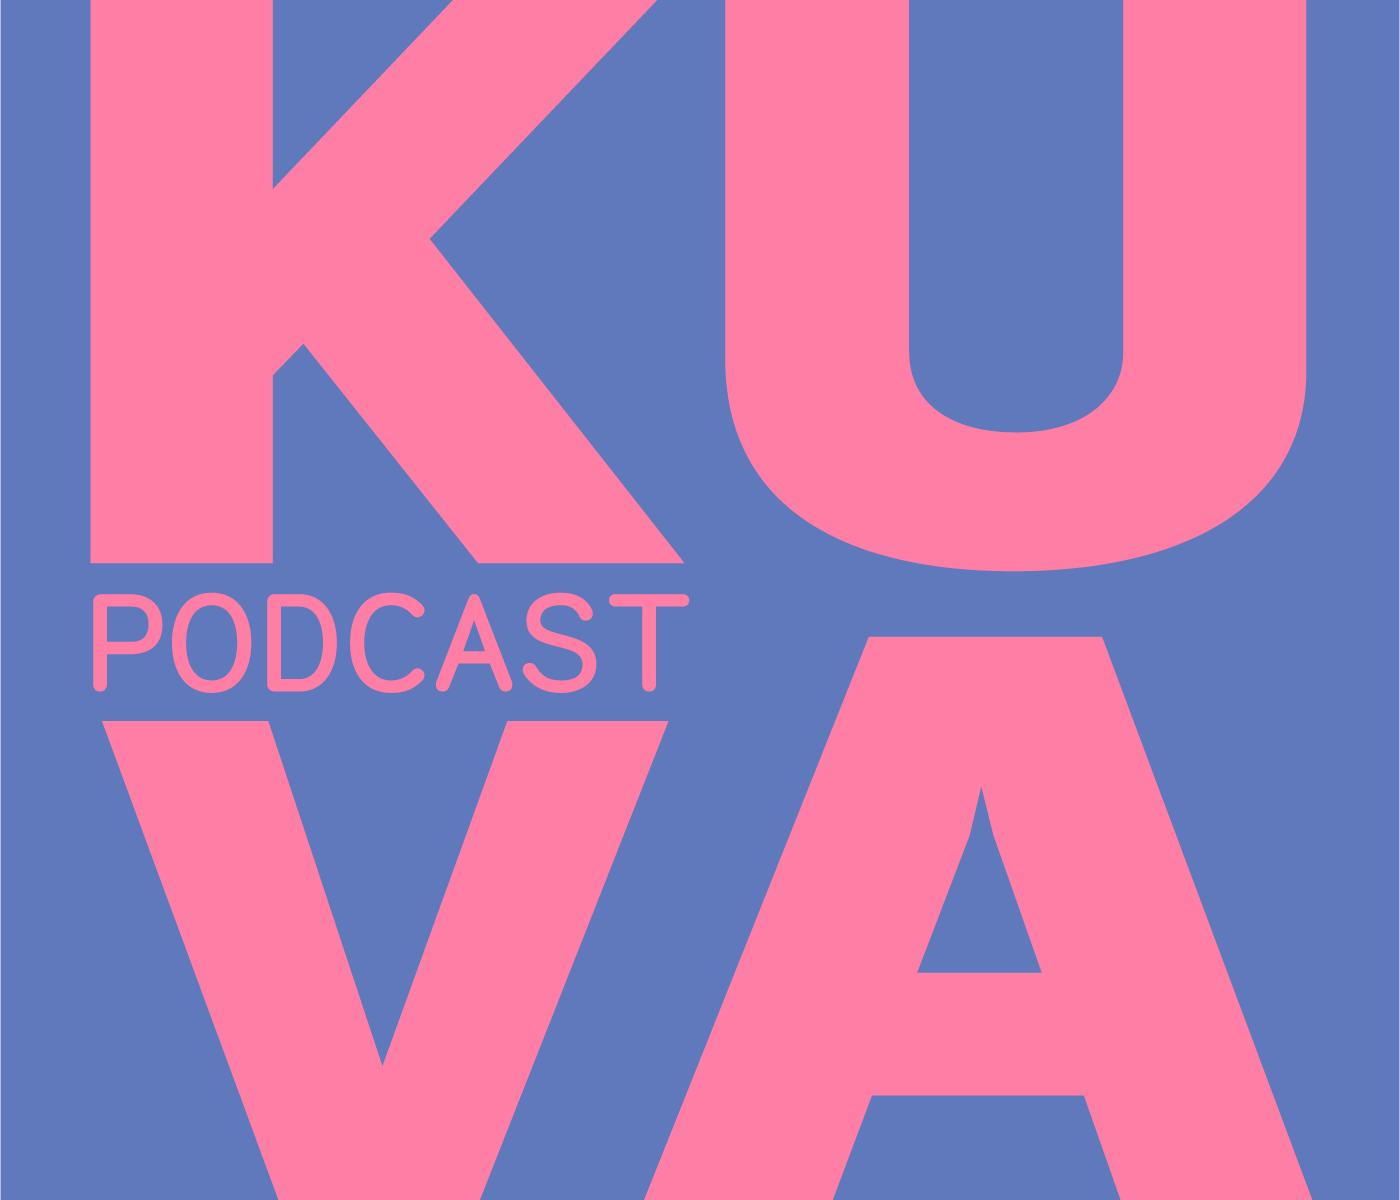 Kuva podcast -juliste